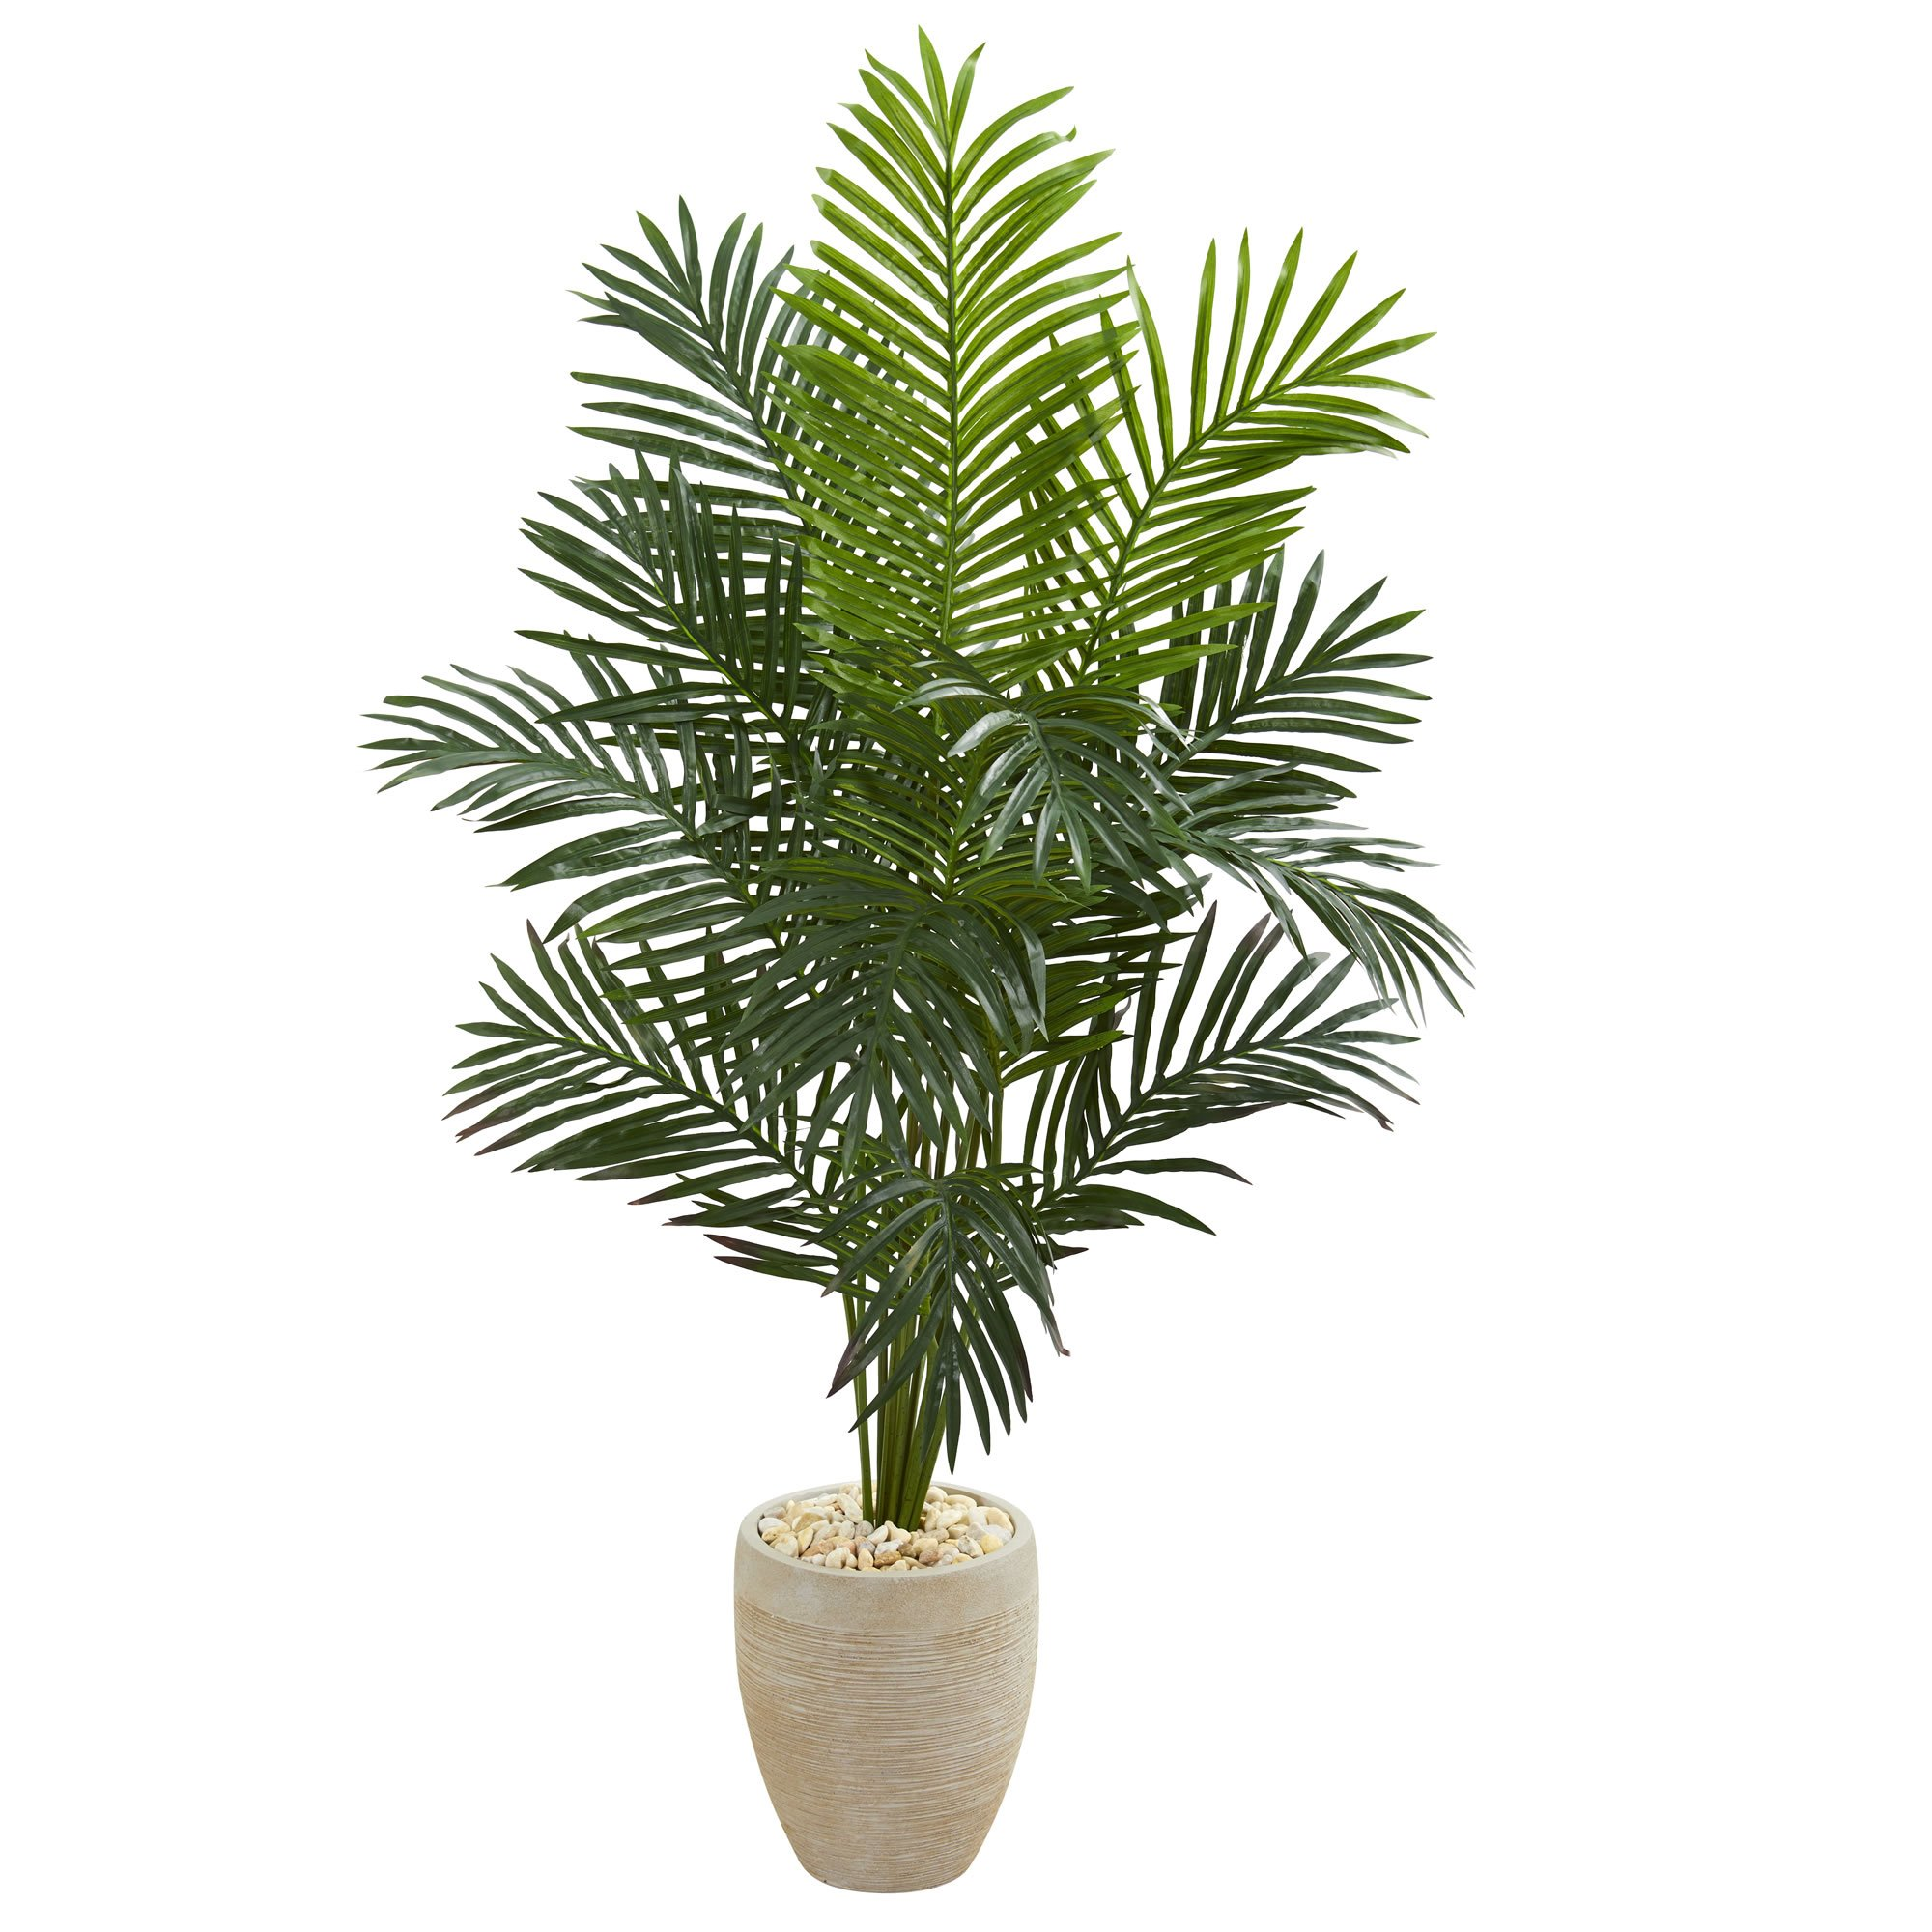 Nearly Natural 5641 5.5' Paradise Palm Tree in Sand Colored Planter Artificial Plant, Green